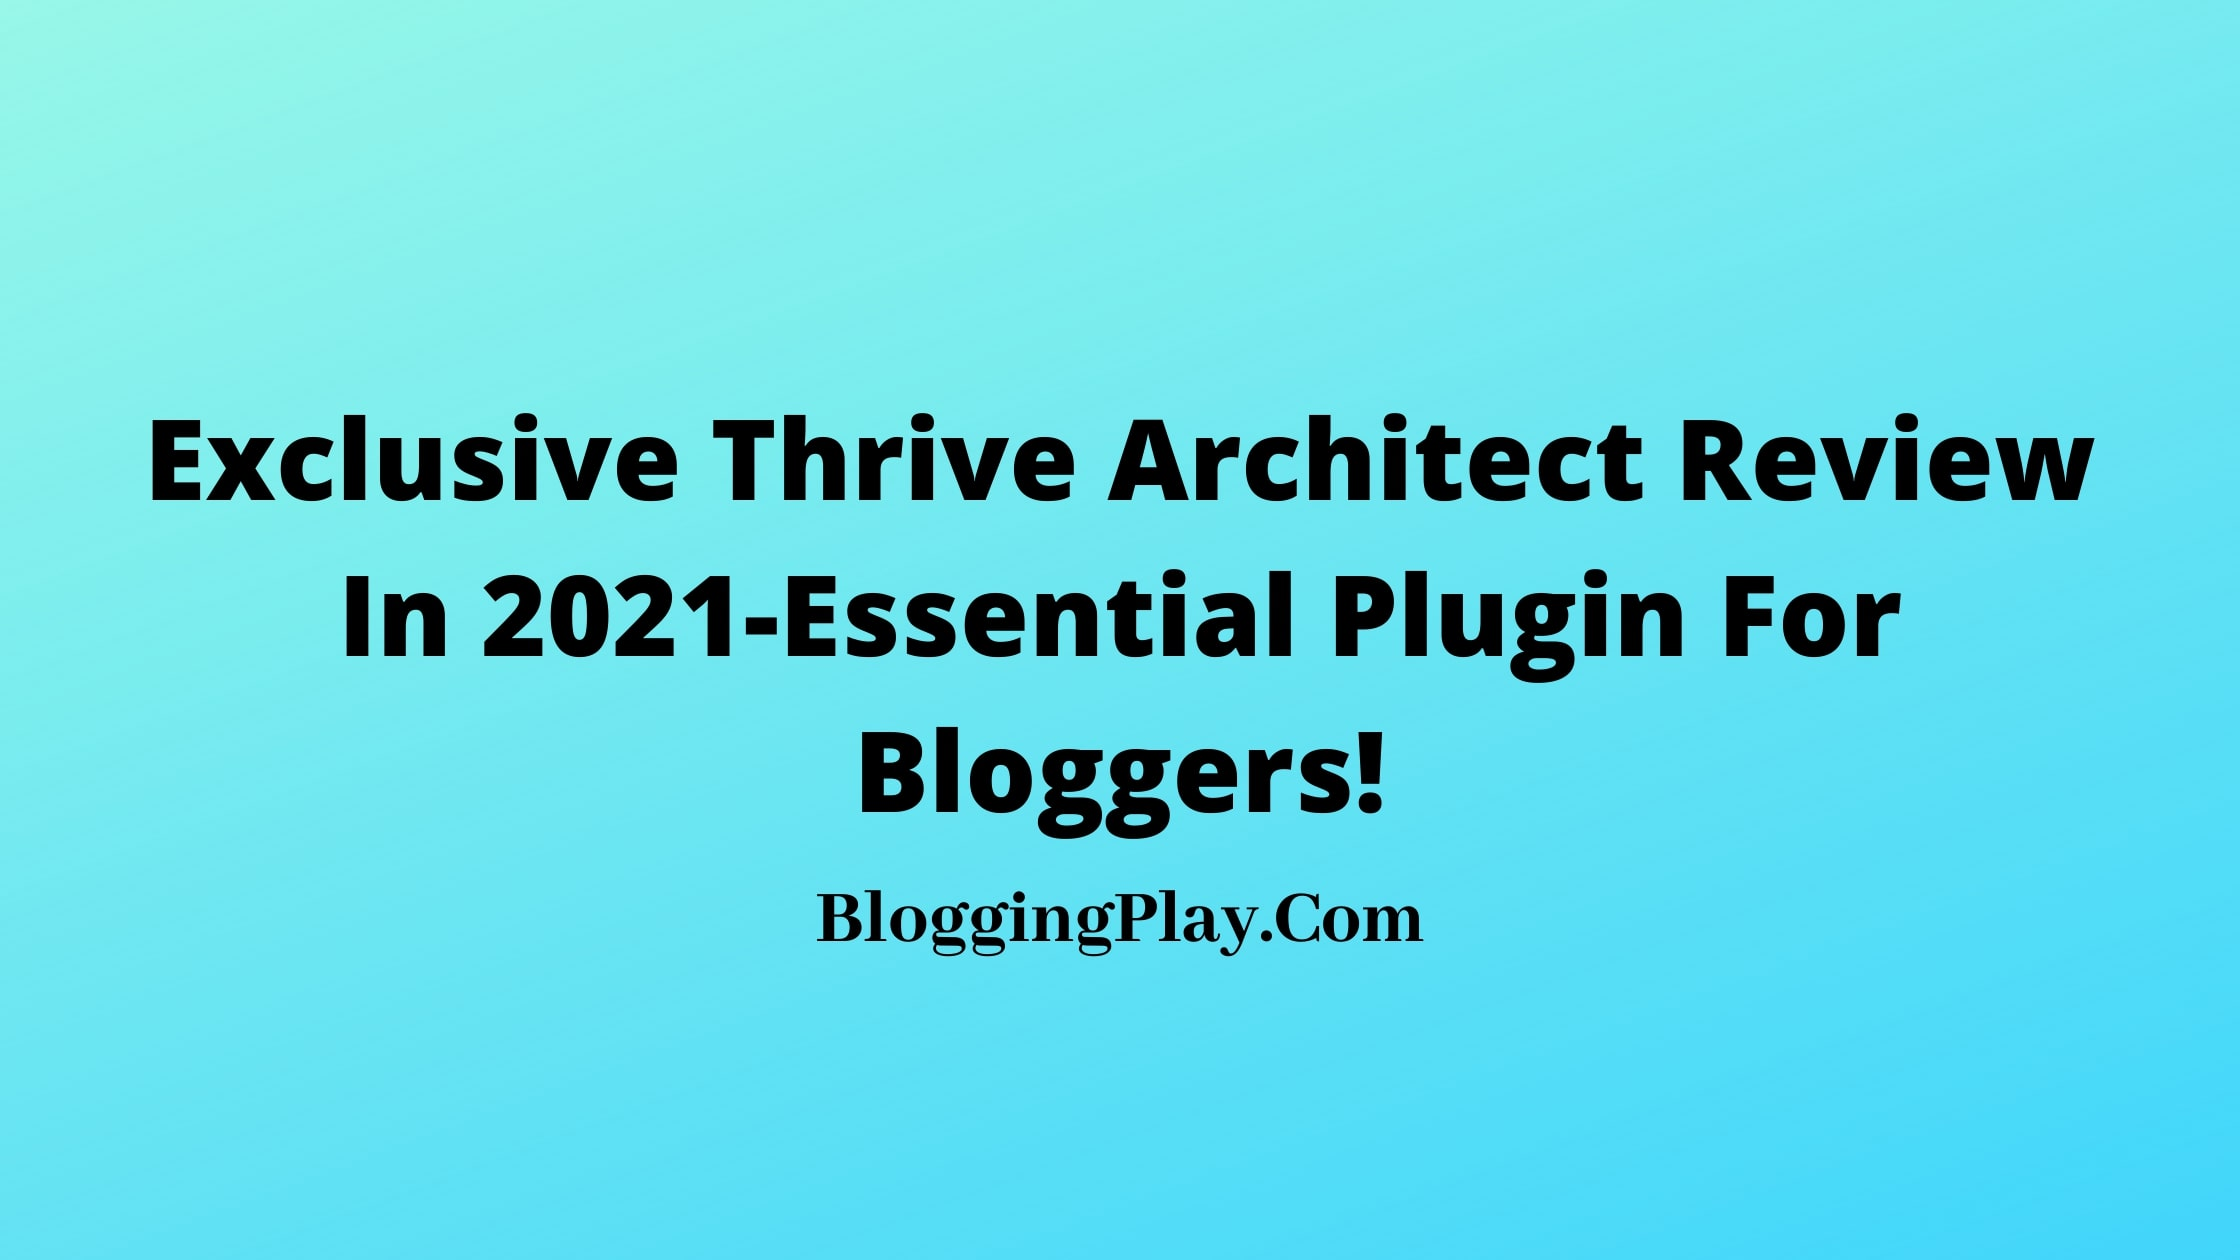 Thrive Architect Review in 2021